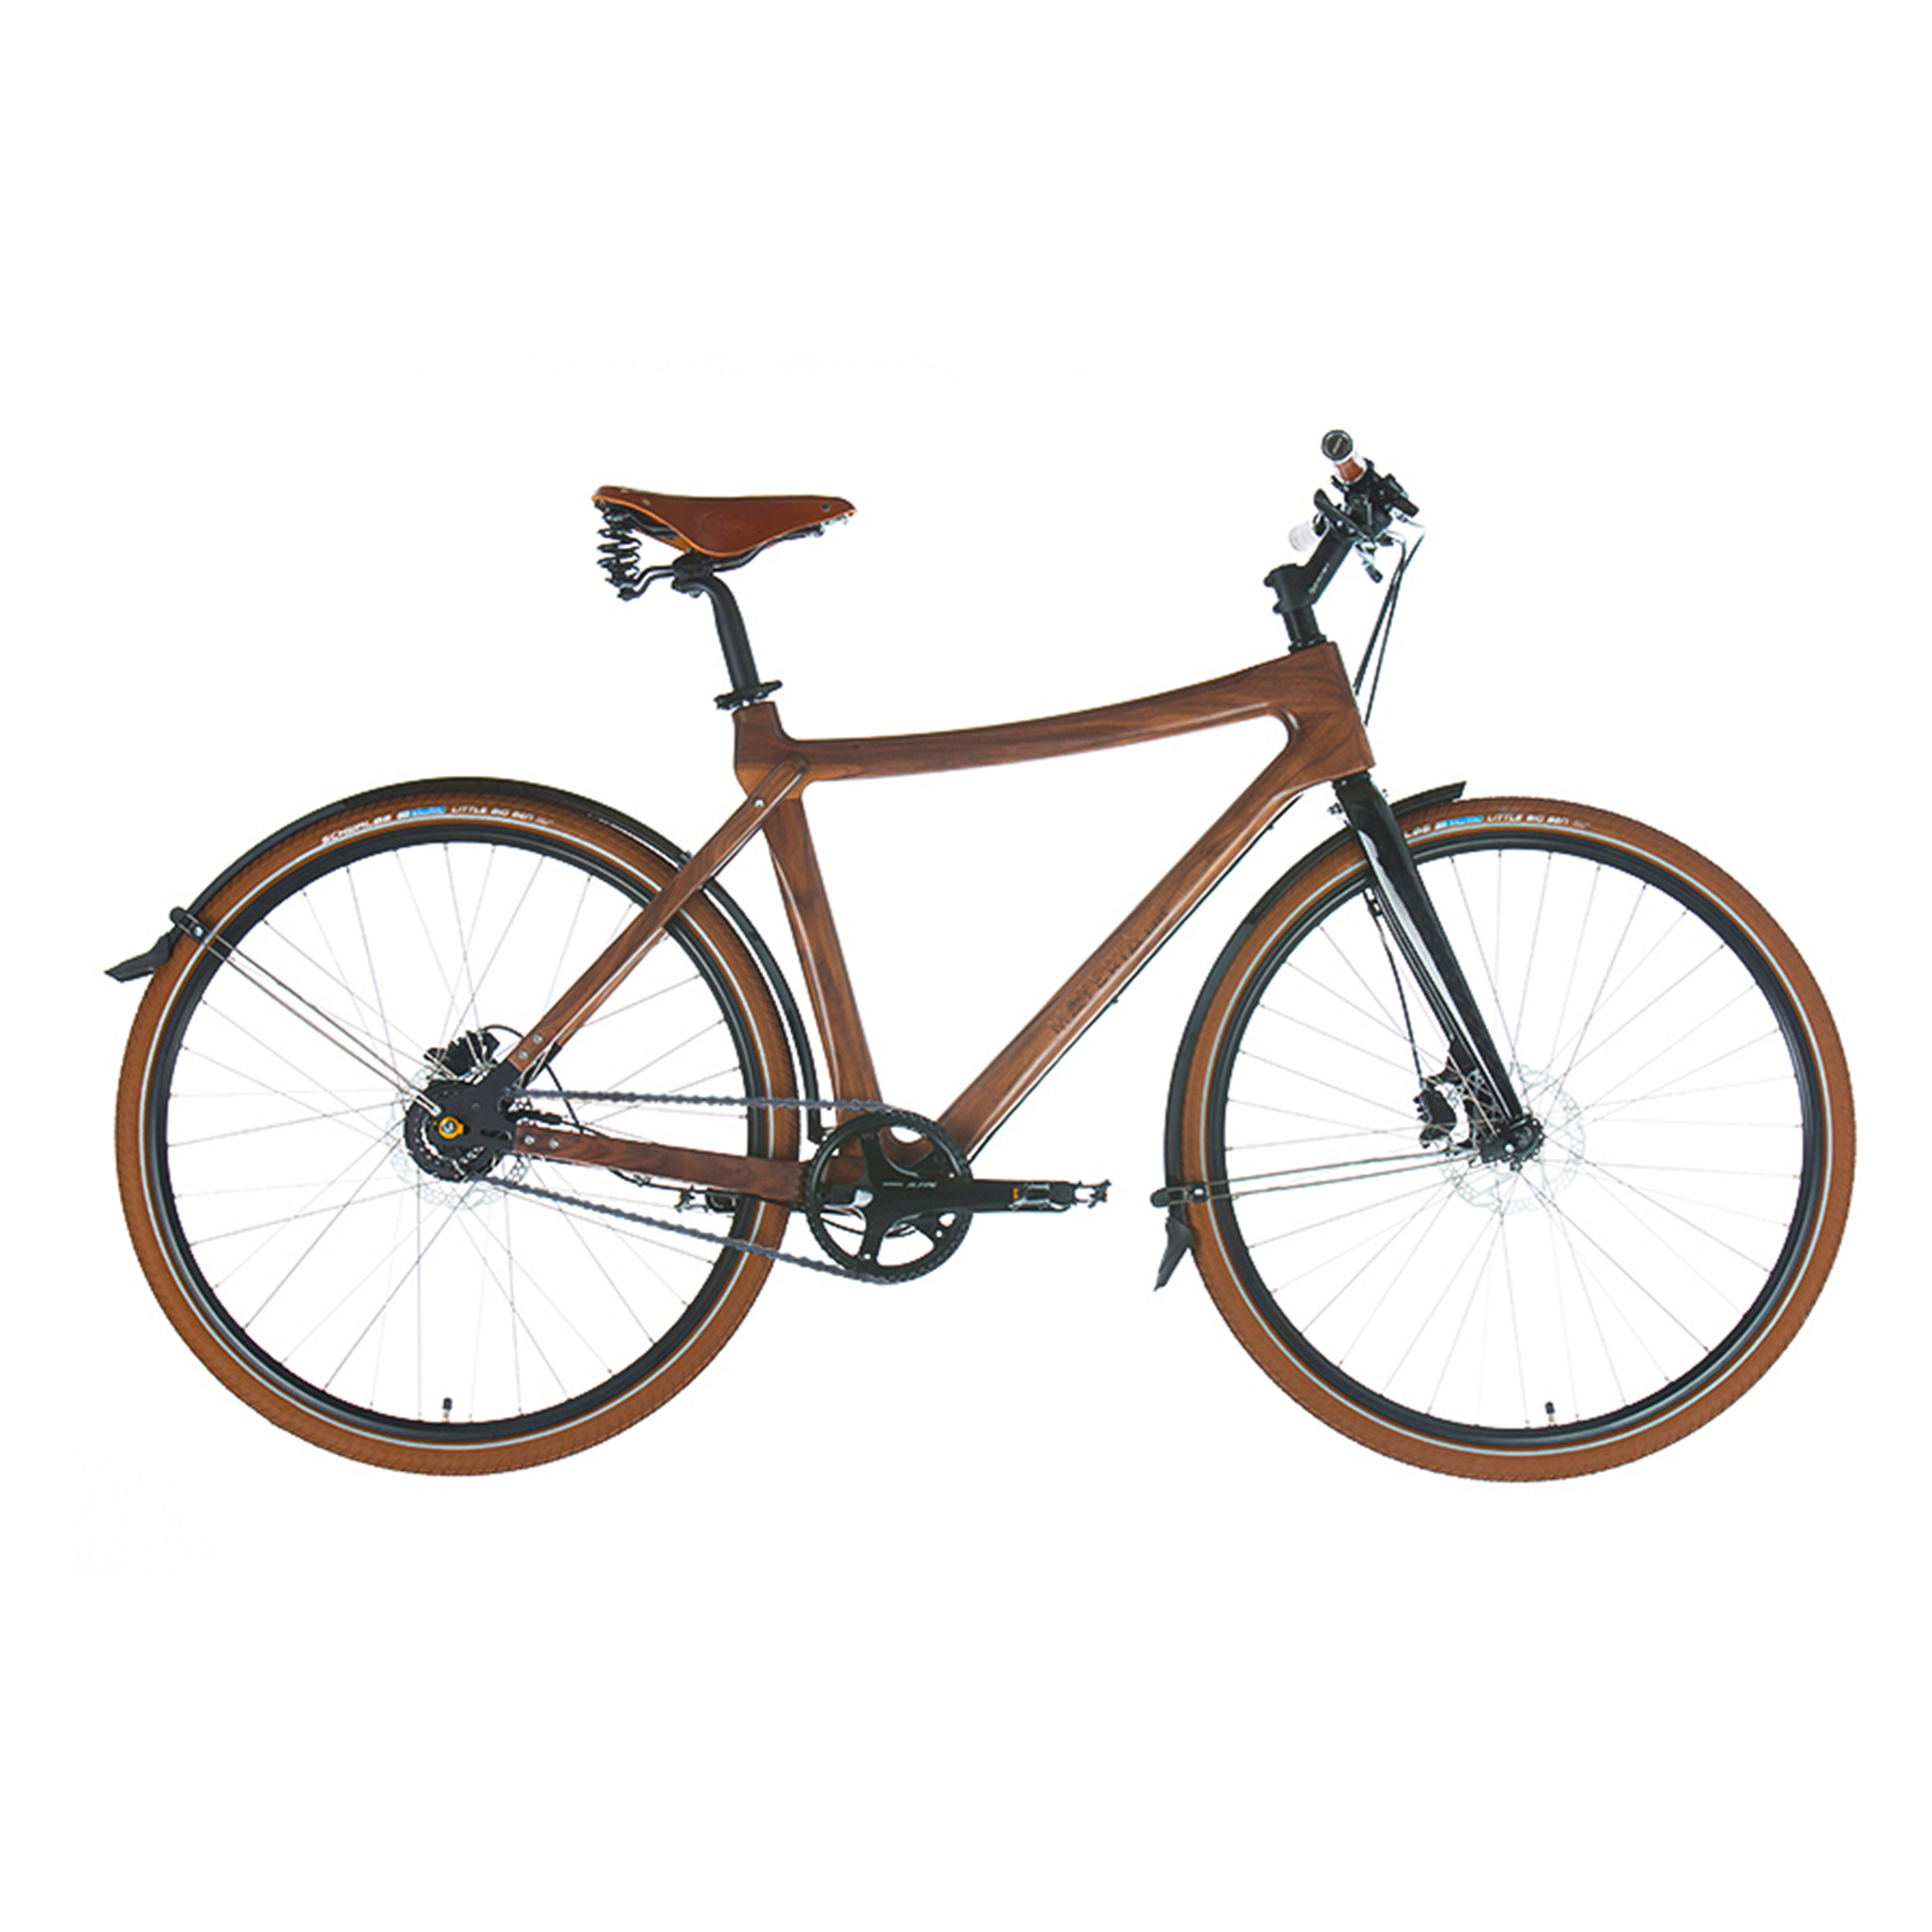 Materia Bikes City Bike Gusto, Walnut